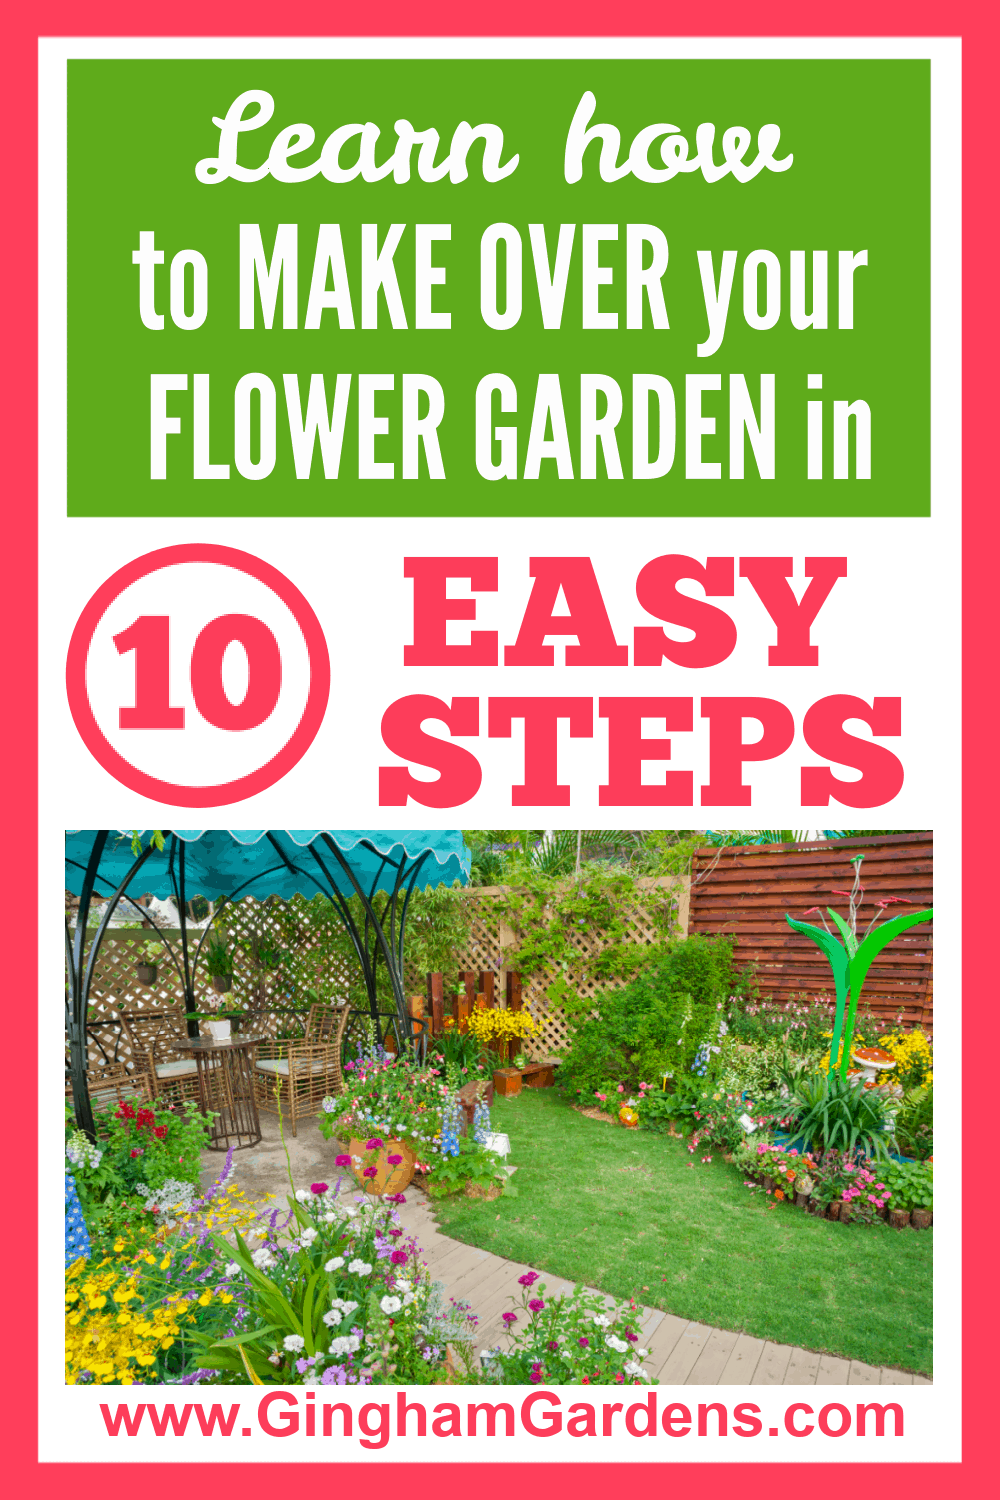 Image of a flower garden with text overlay - Learn How to Make Over your Flower Garden